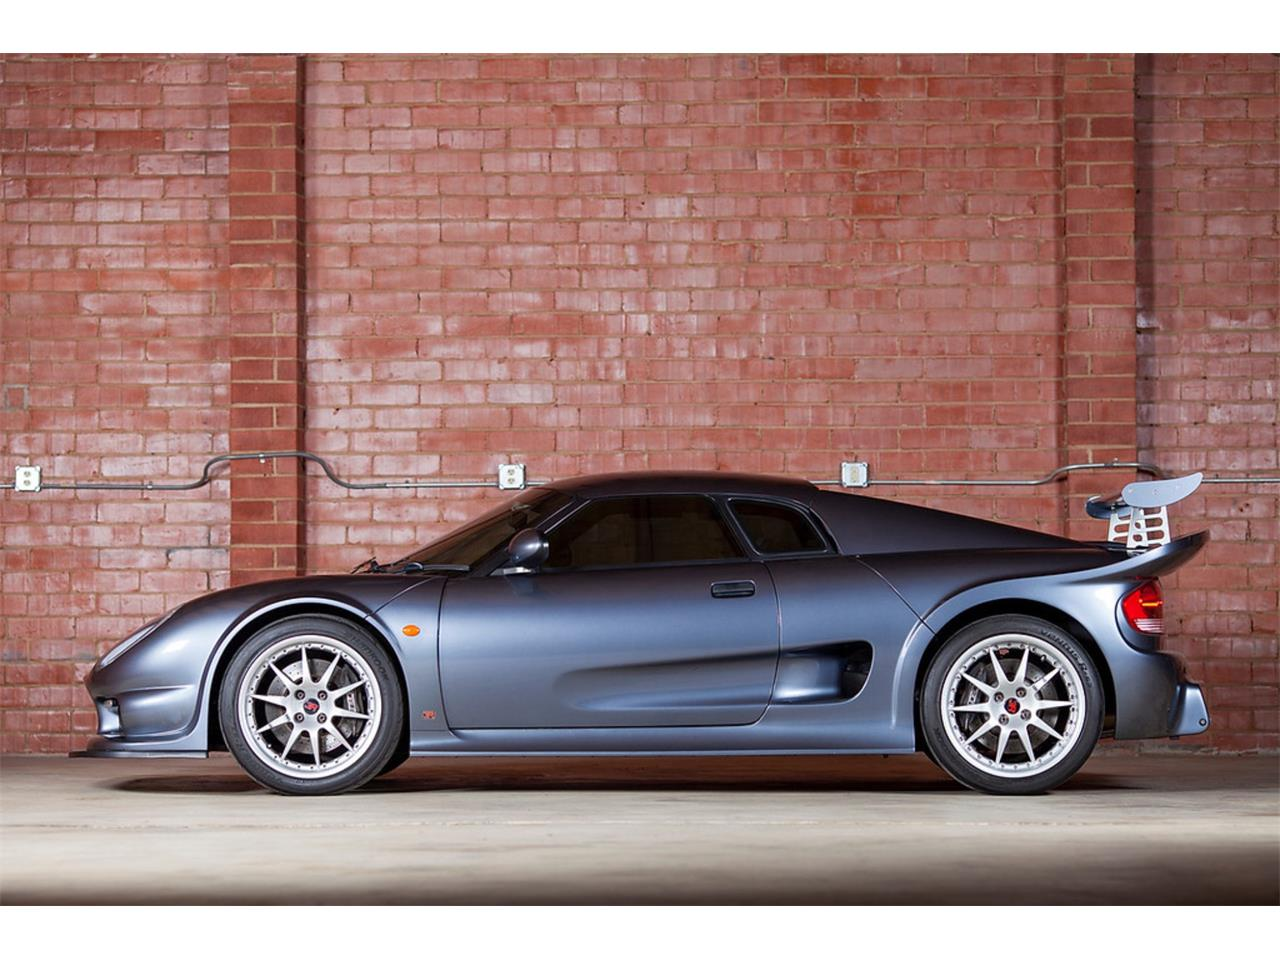 Large Picture of '05 Noble M12 GTO-3R located in North Carolina Auction Vehicle Offered by Bring A Trailer - Q5KN